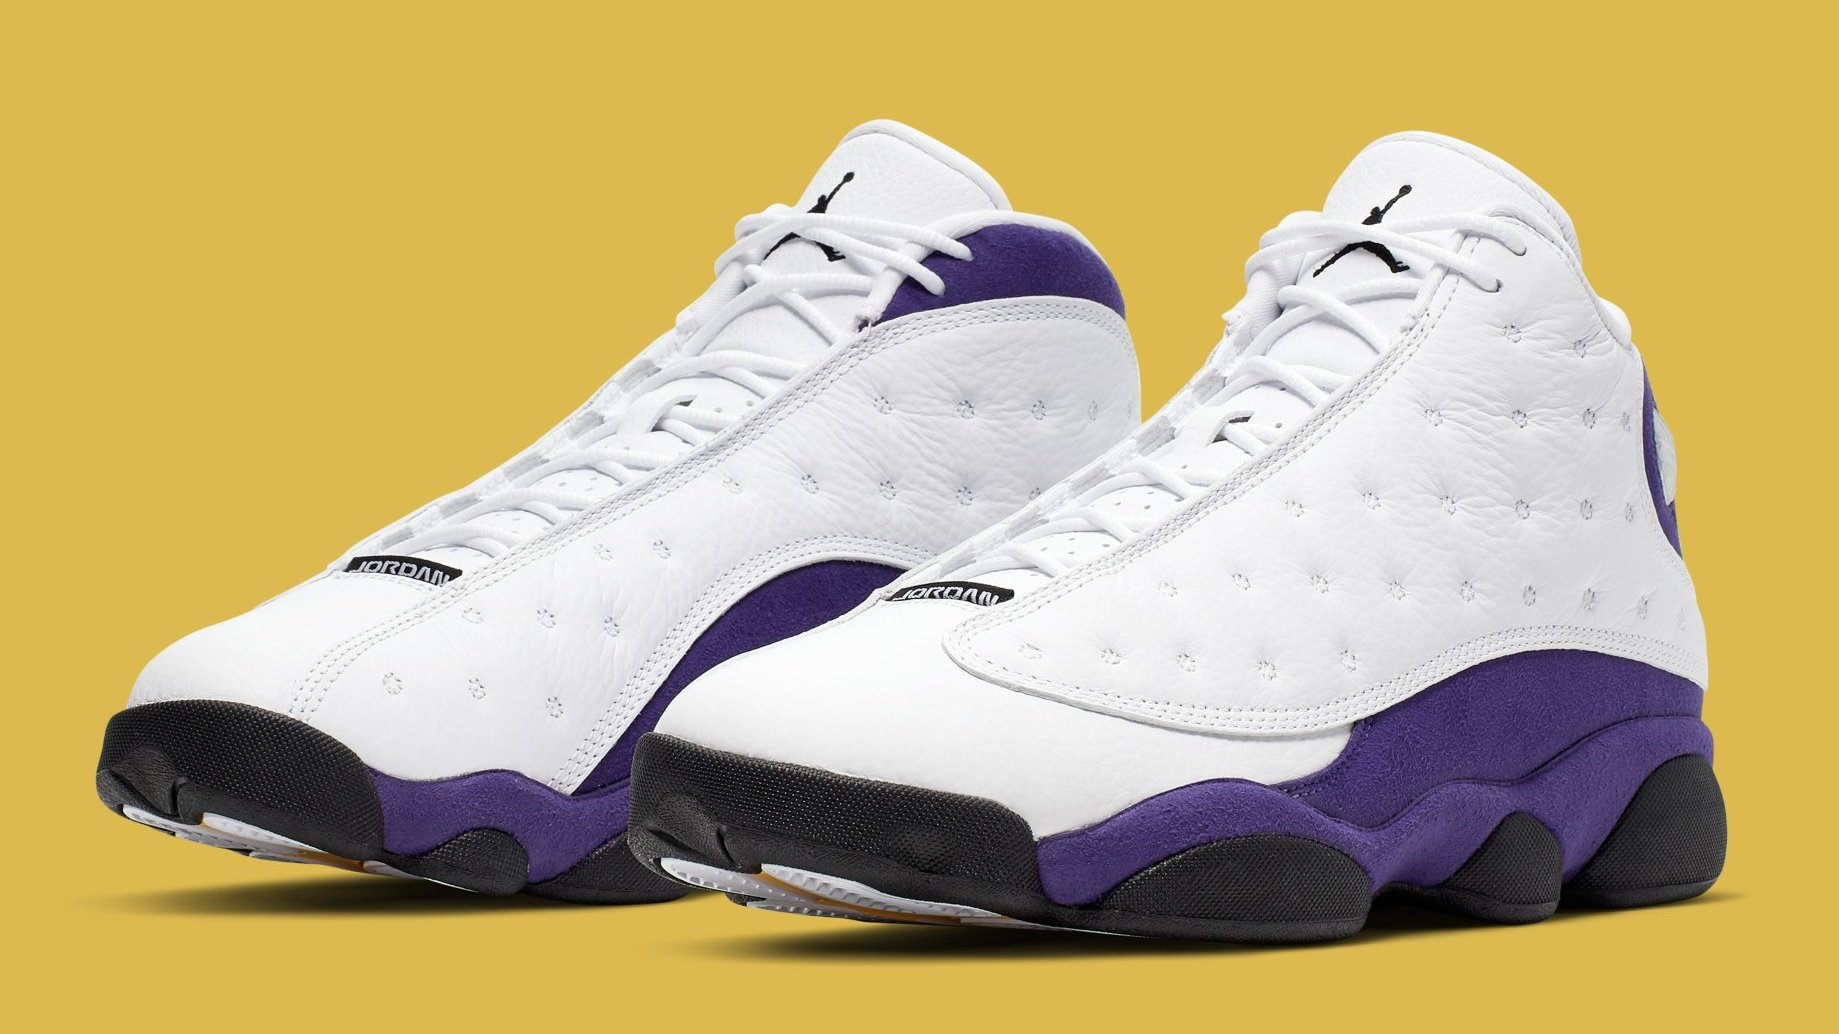 super popular 8ed40 498f4 Air Jordan 13 'Lakers' White/Black-Court Purple-University ...